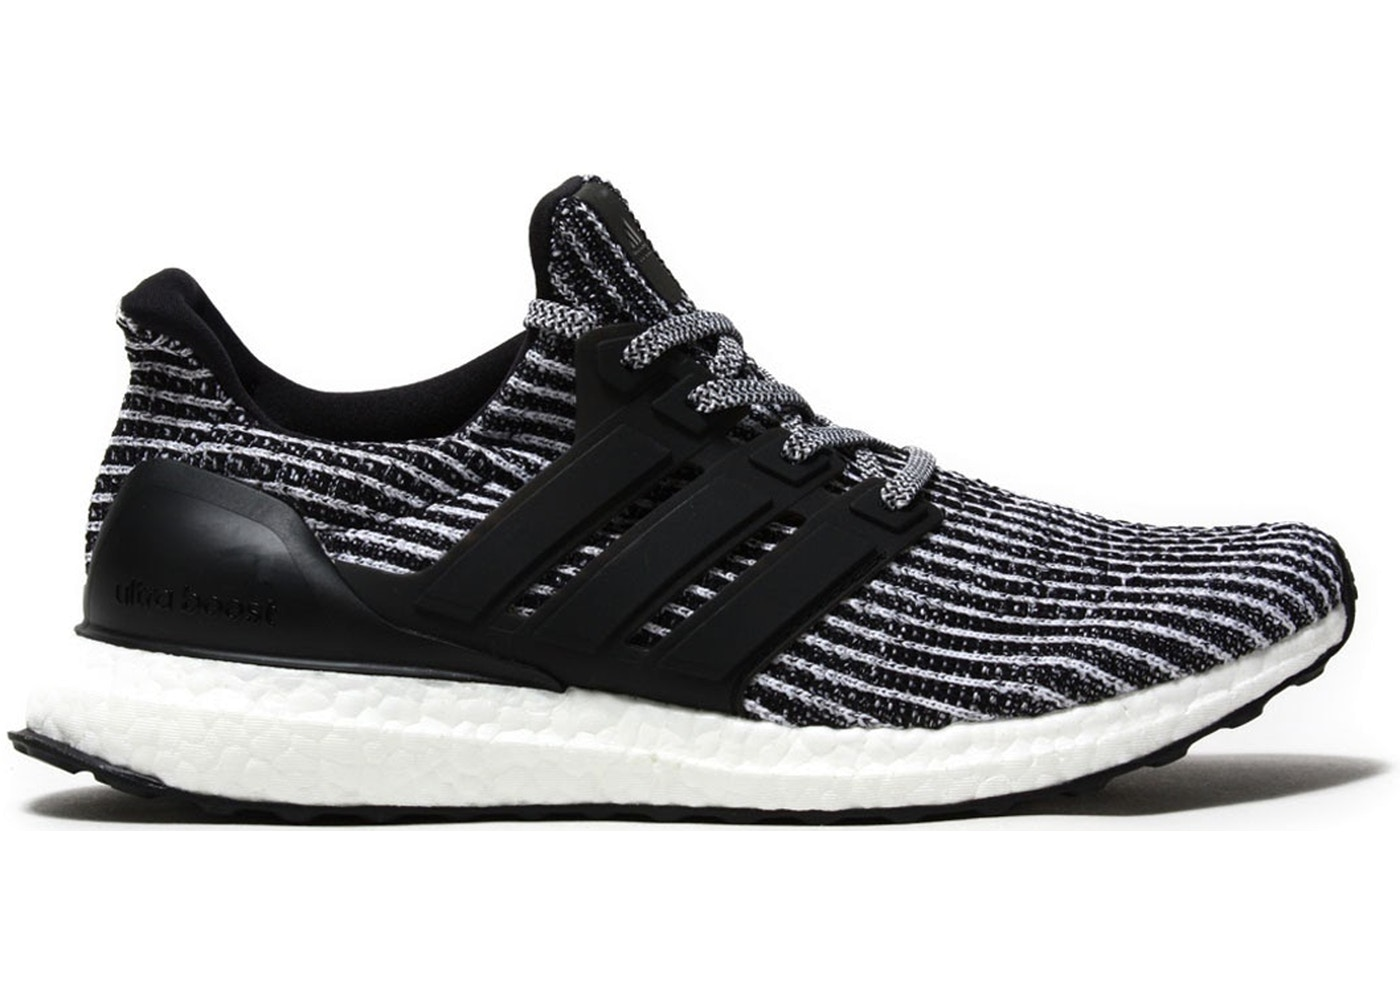 Adidas Ultra Boost 4.0 Cookies & Cream Review